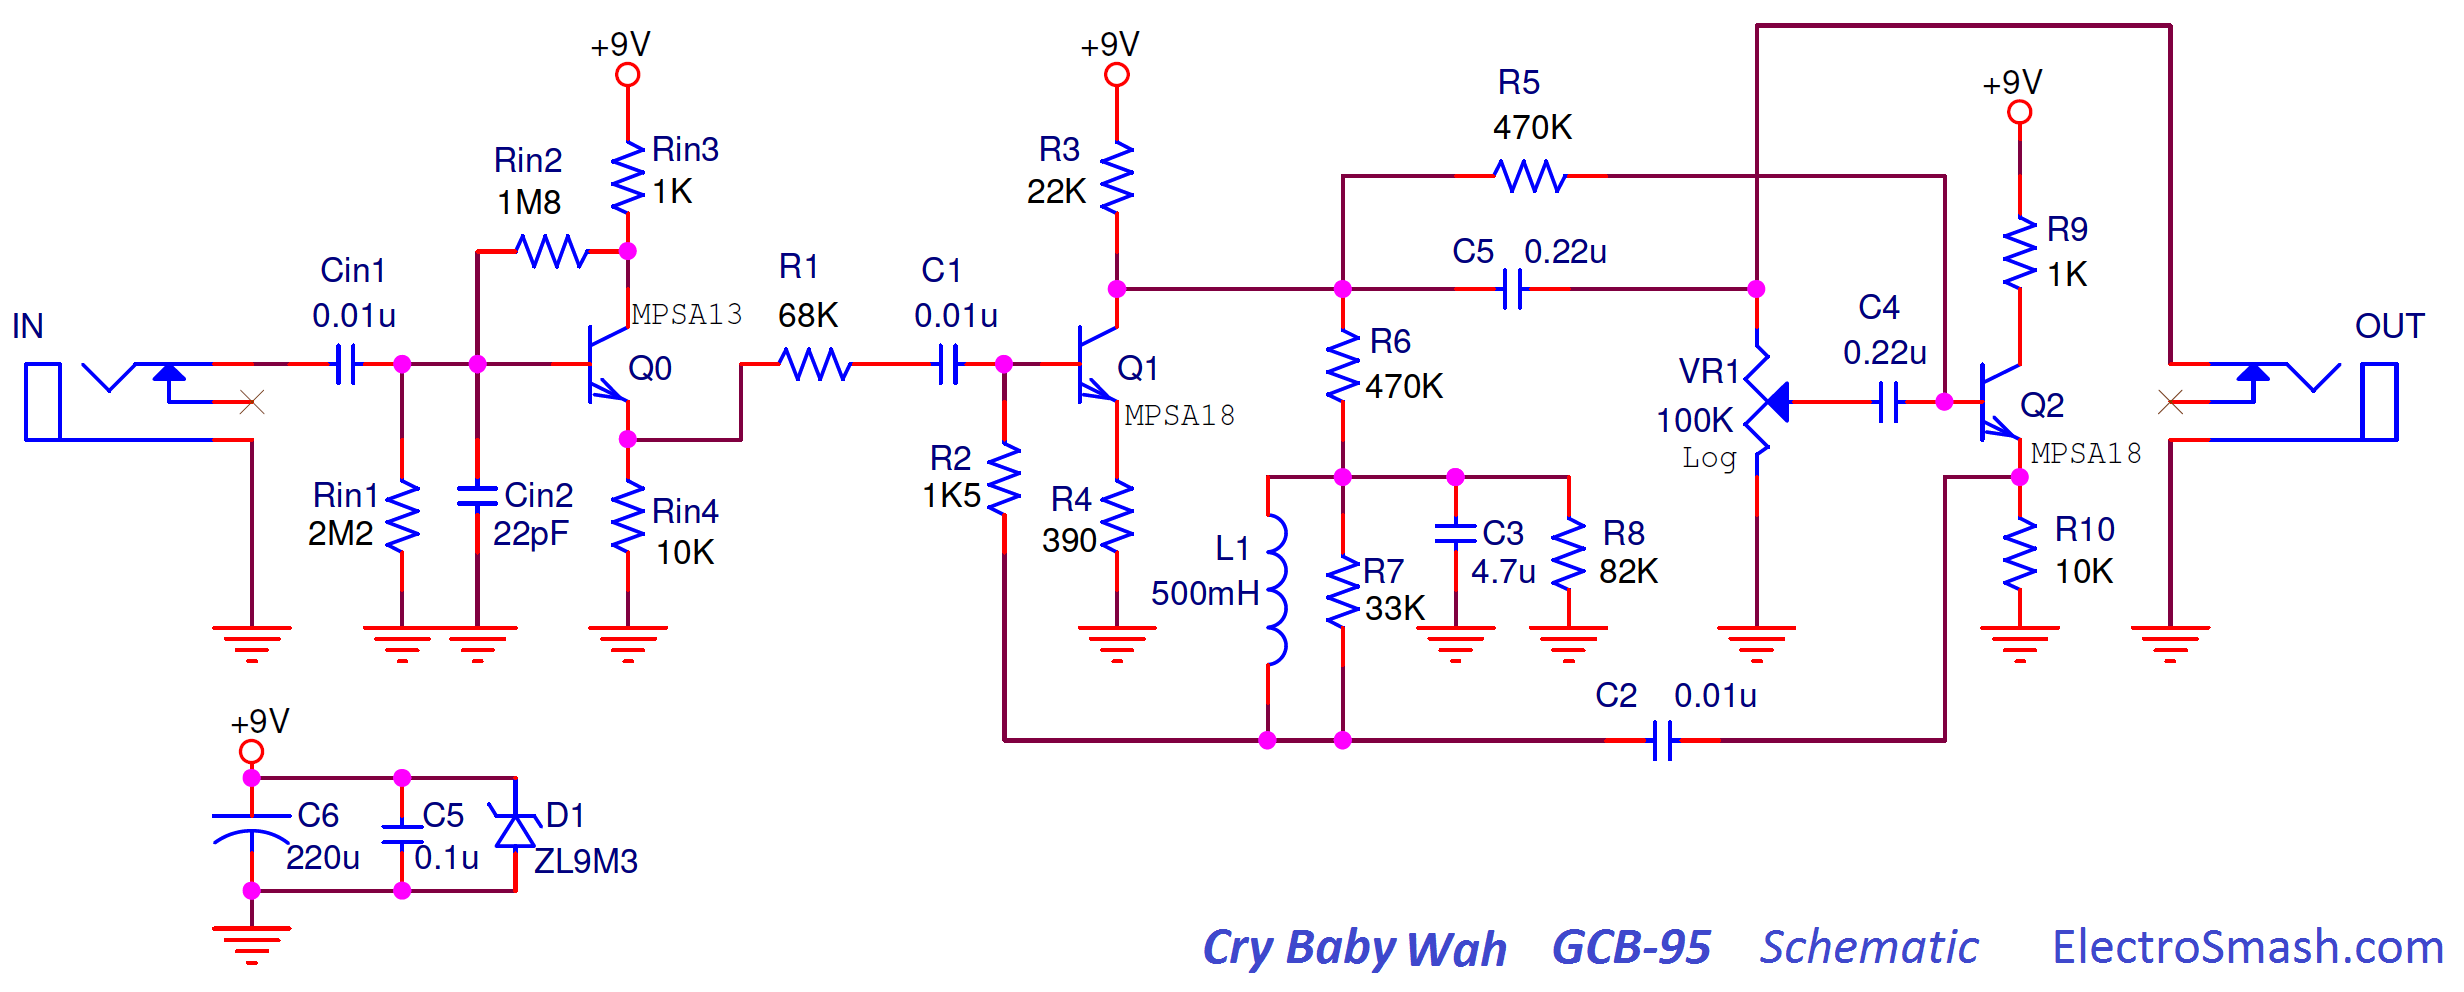 Electrosmash Dunlop Crybaby Gcb 95 Circuit Analysis 4pdt Wiring Diagram The Cry Baby Schematic